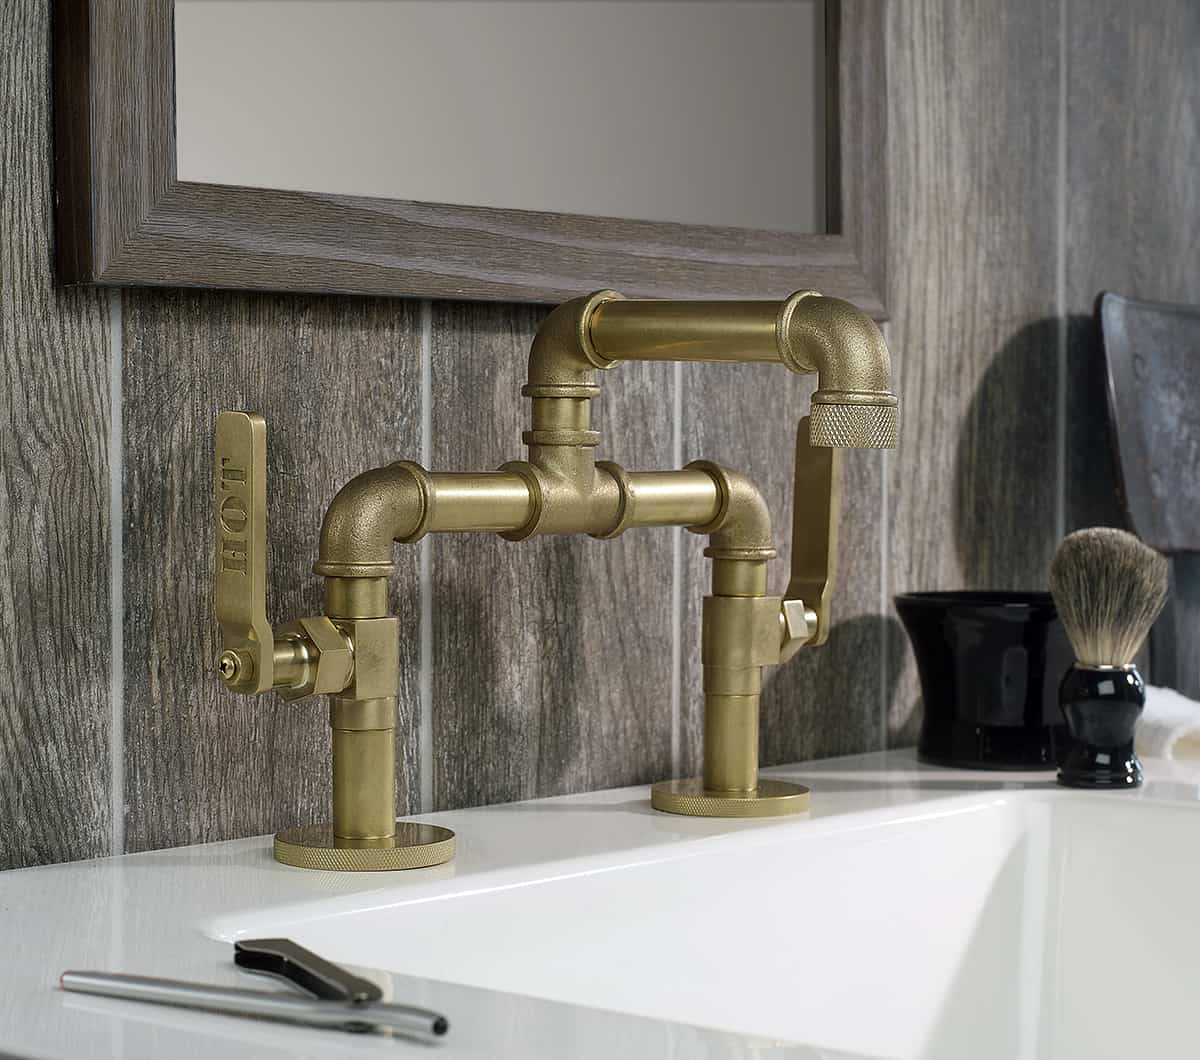 four hole kitchen faucets modern white gloss cabinets industrial style by watermark to give your ...